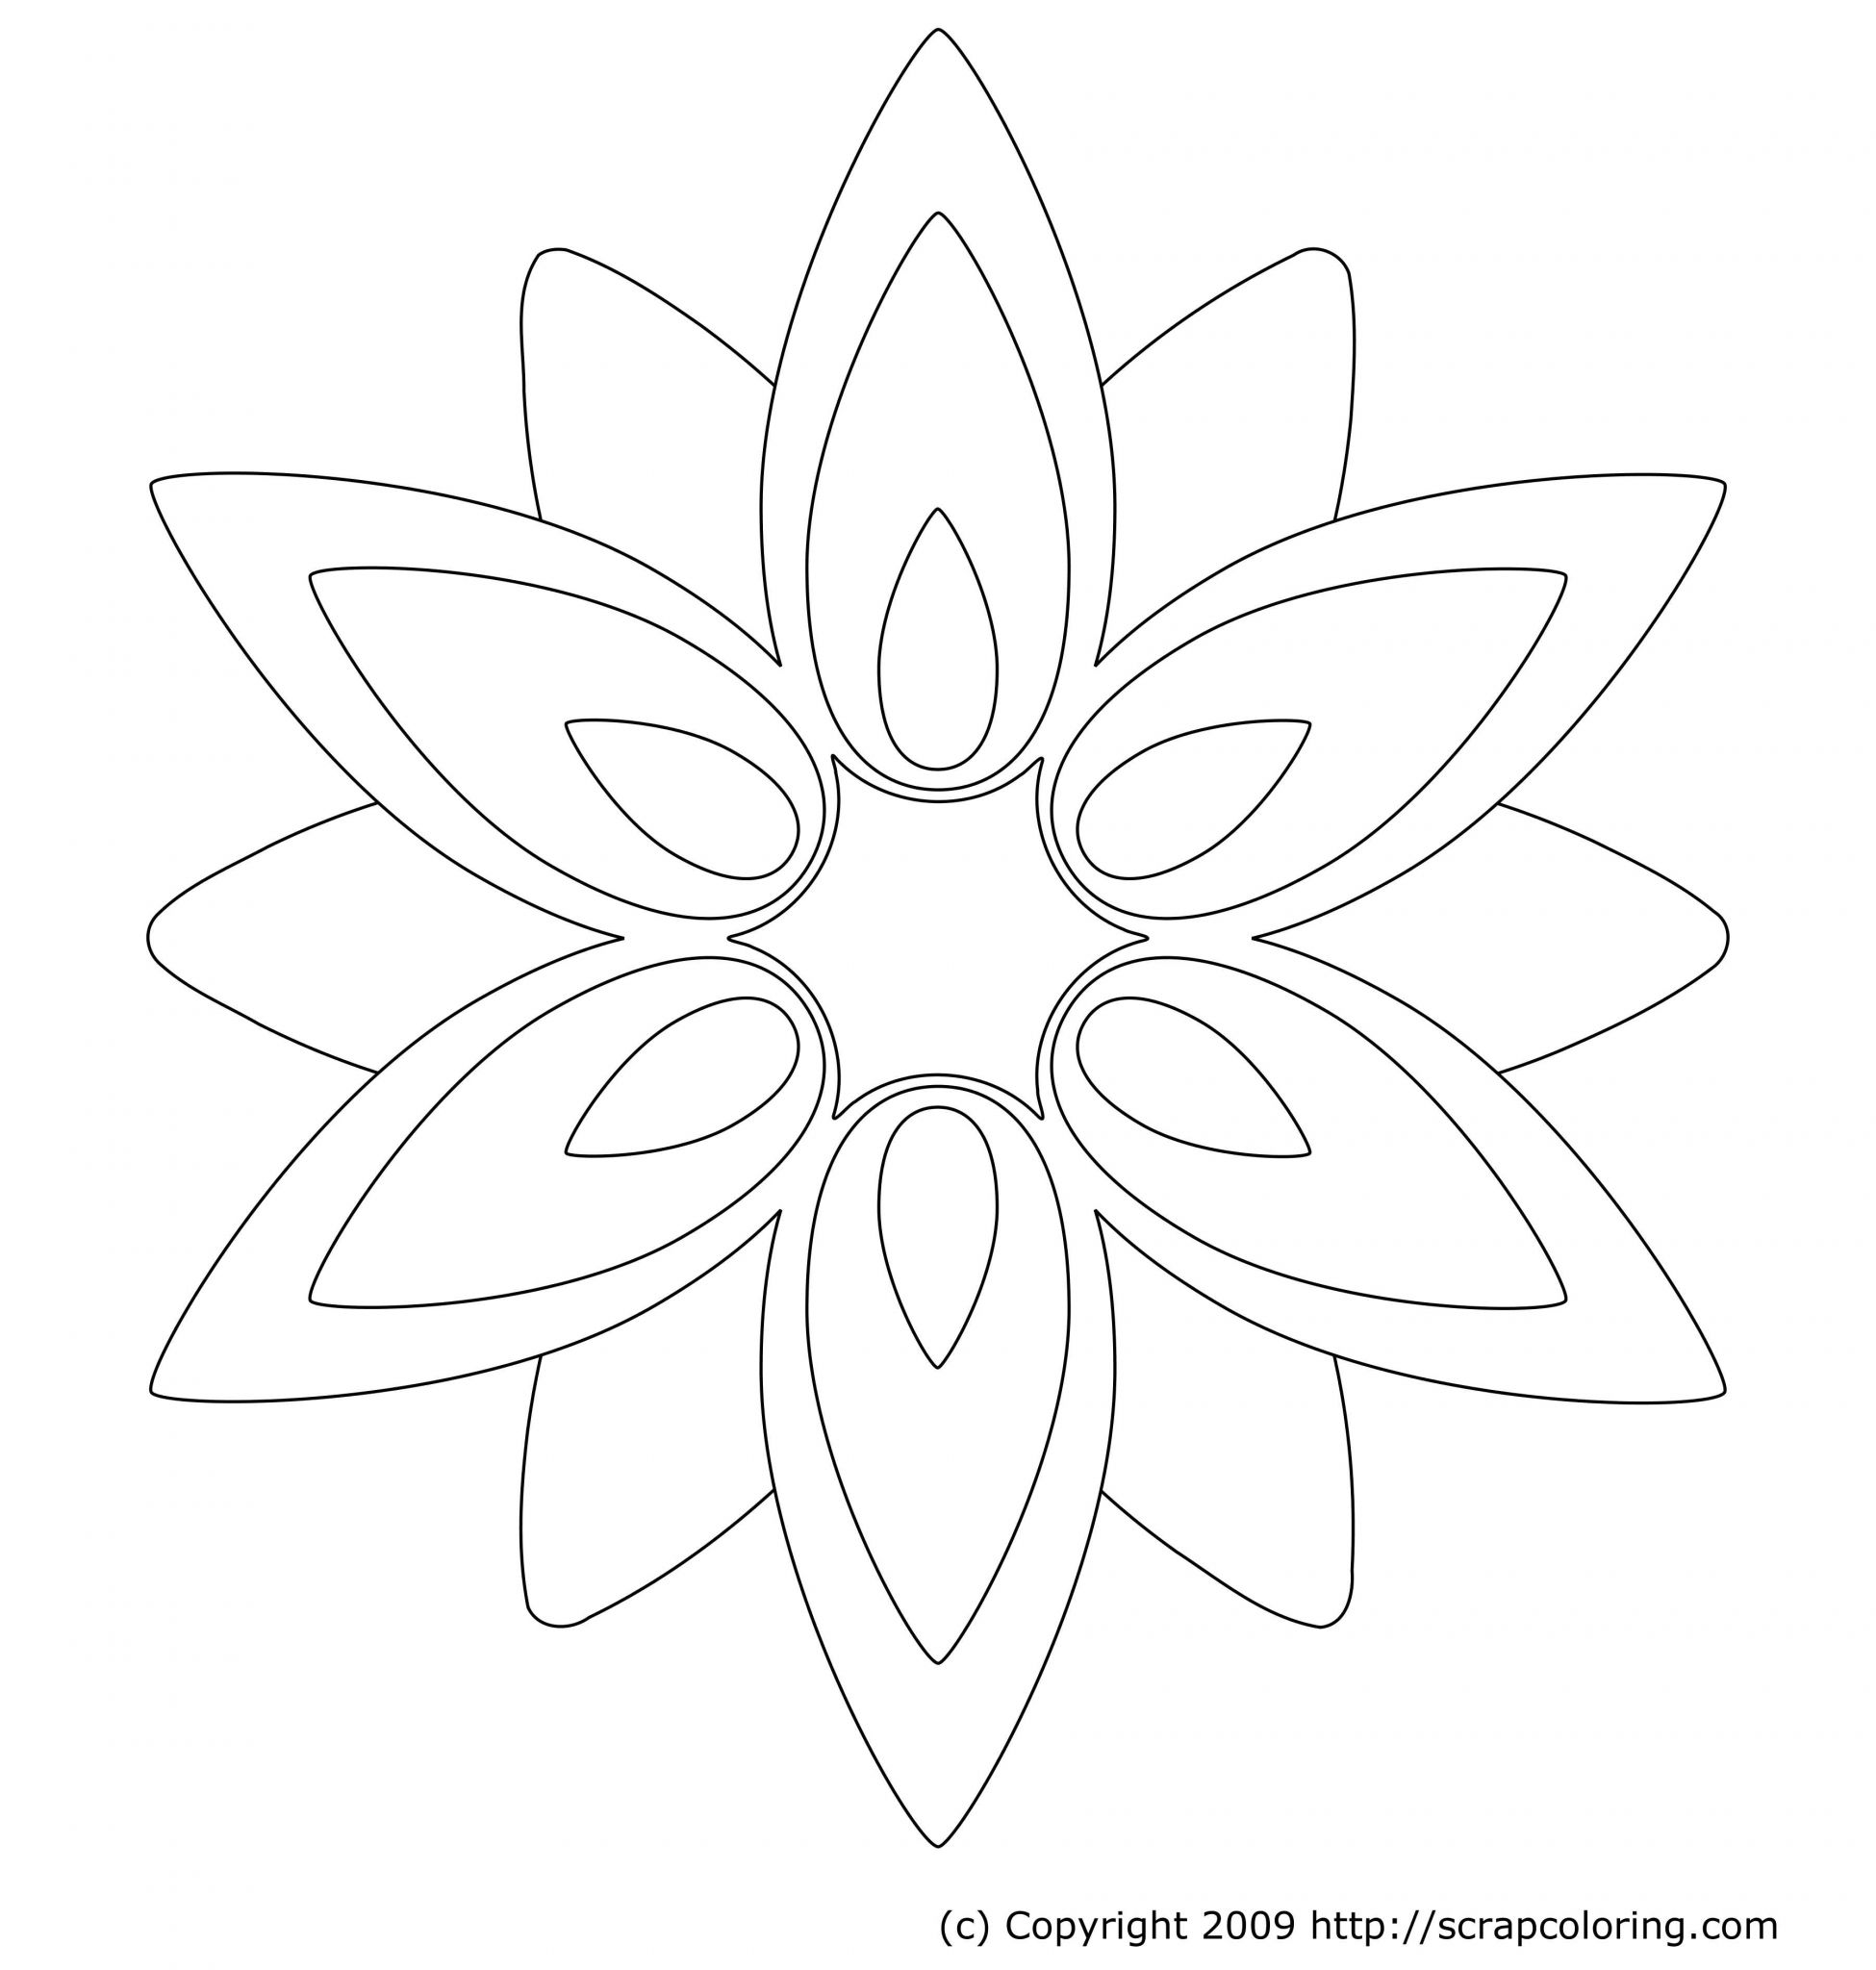 Parts Of A Flower Worksheet together with Geometric Flower Coloring Worksheet & Coloring Pages